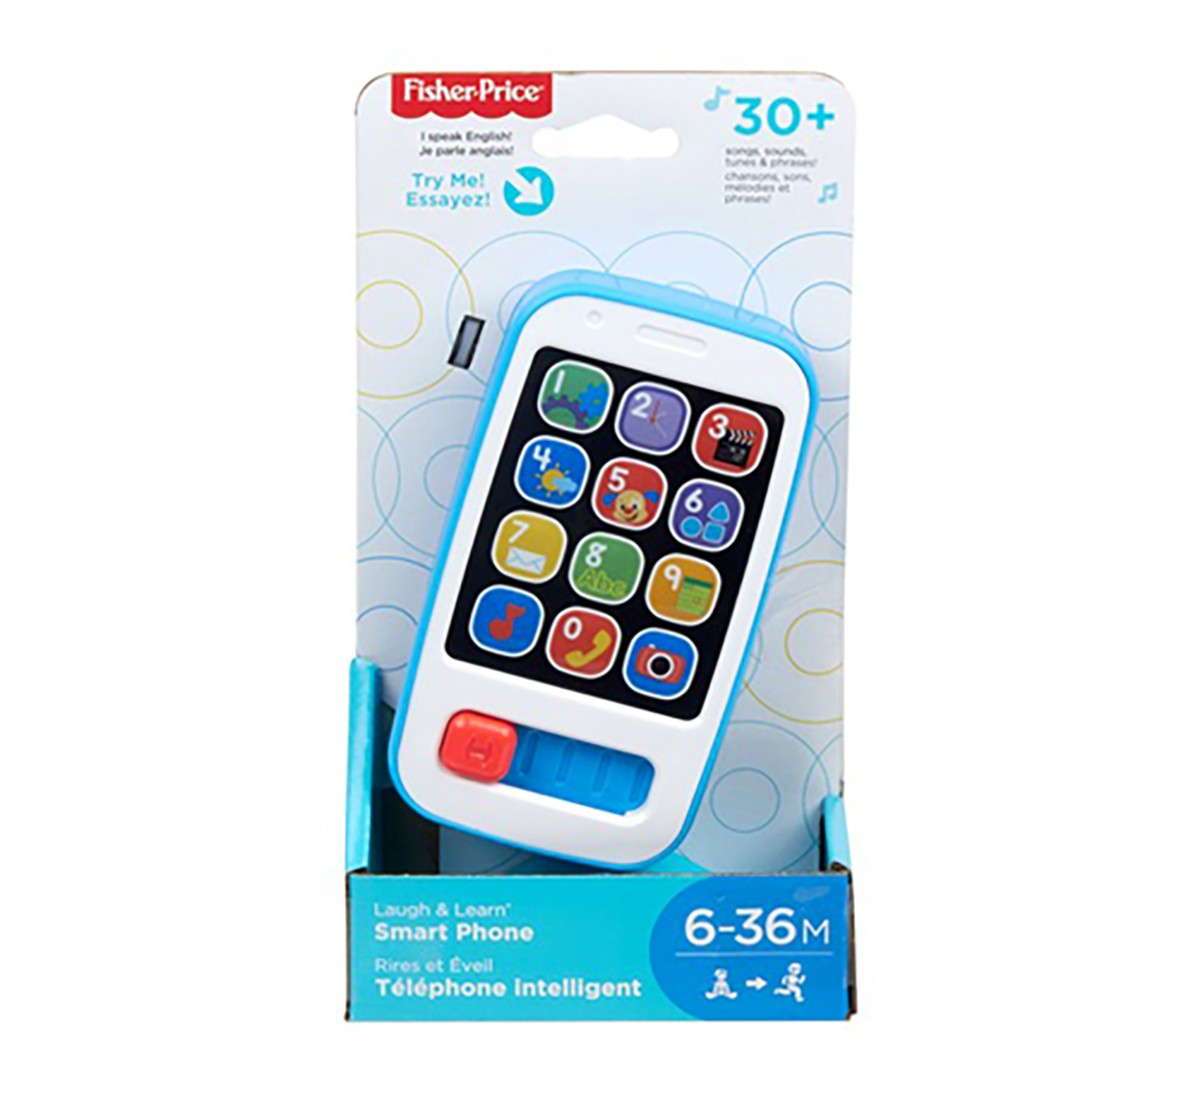 Fisher-Price® Smart Phone Assorted Learning Toys for Kids age 6M+